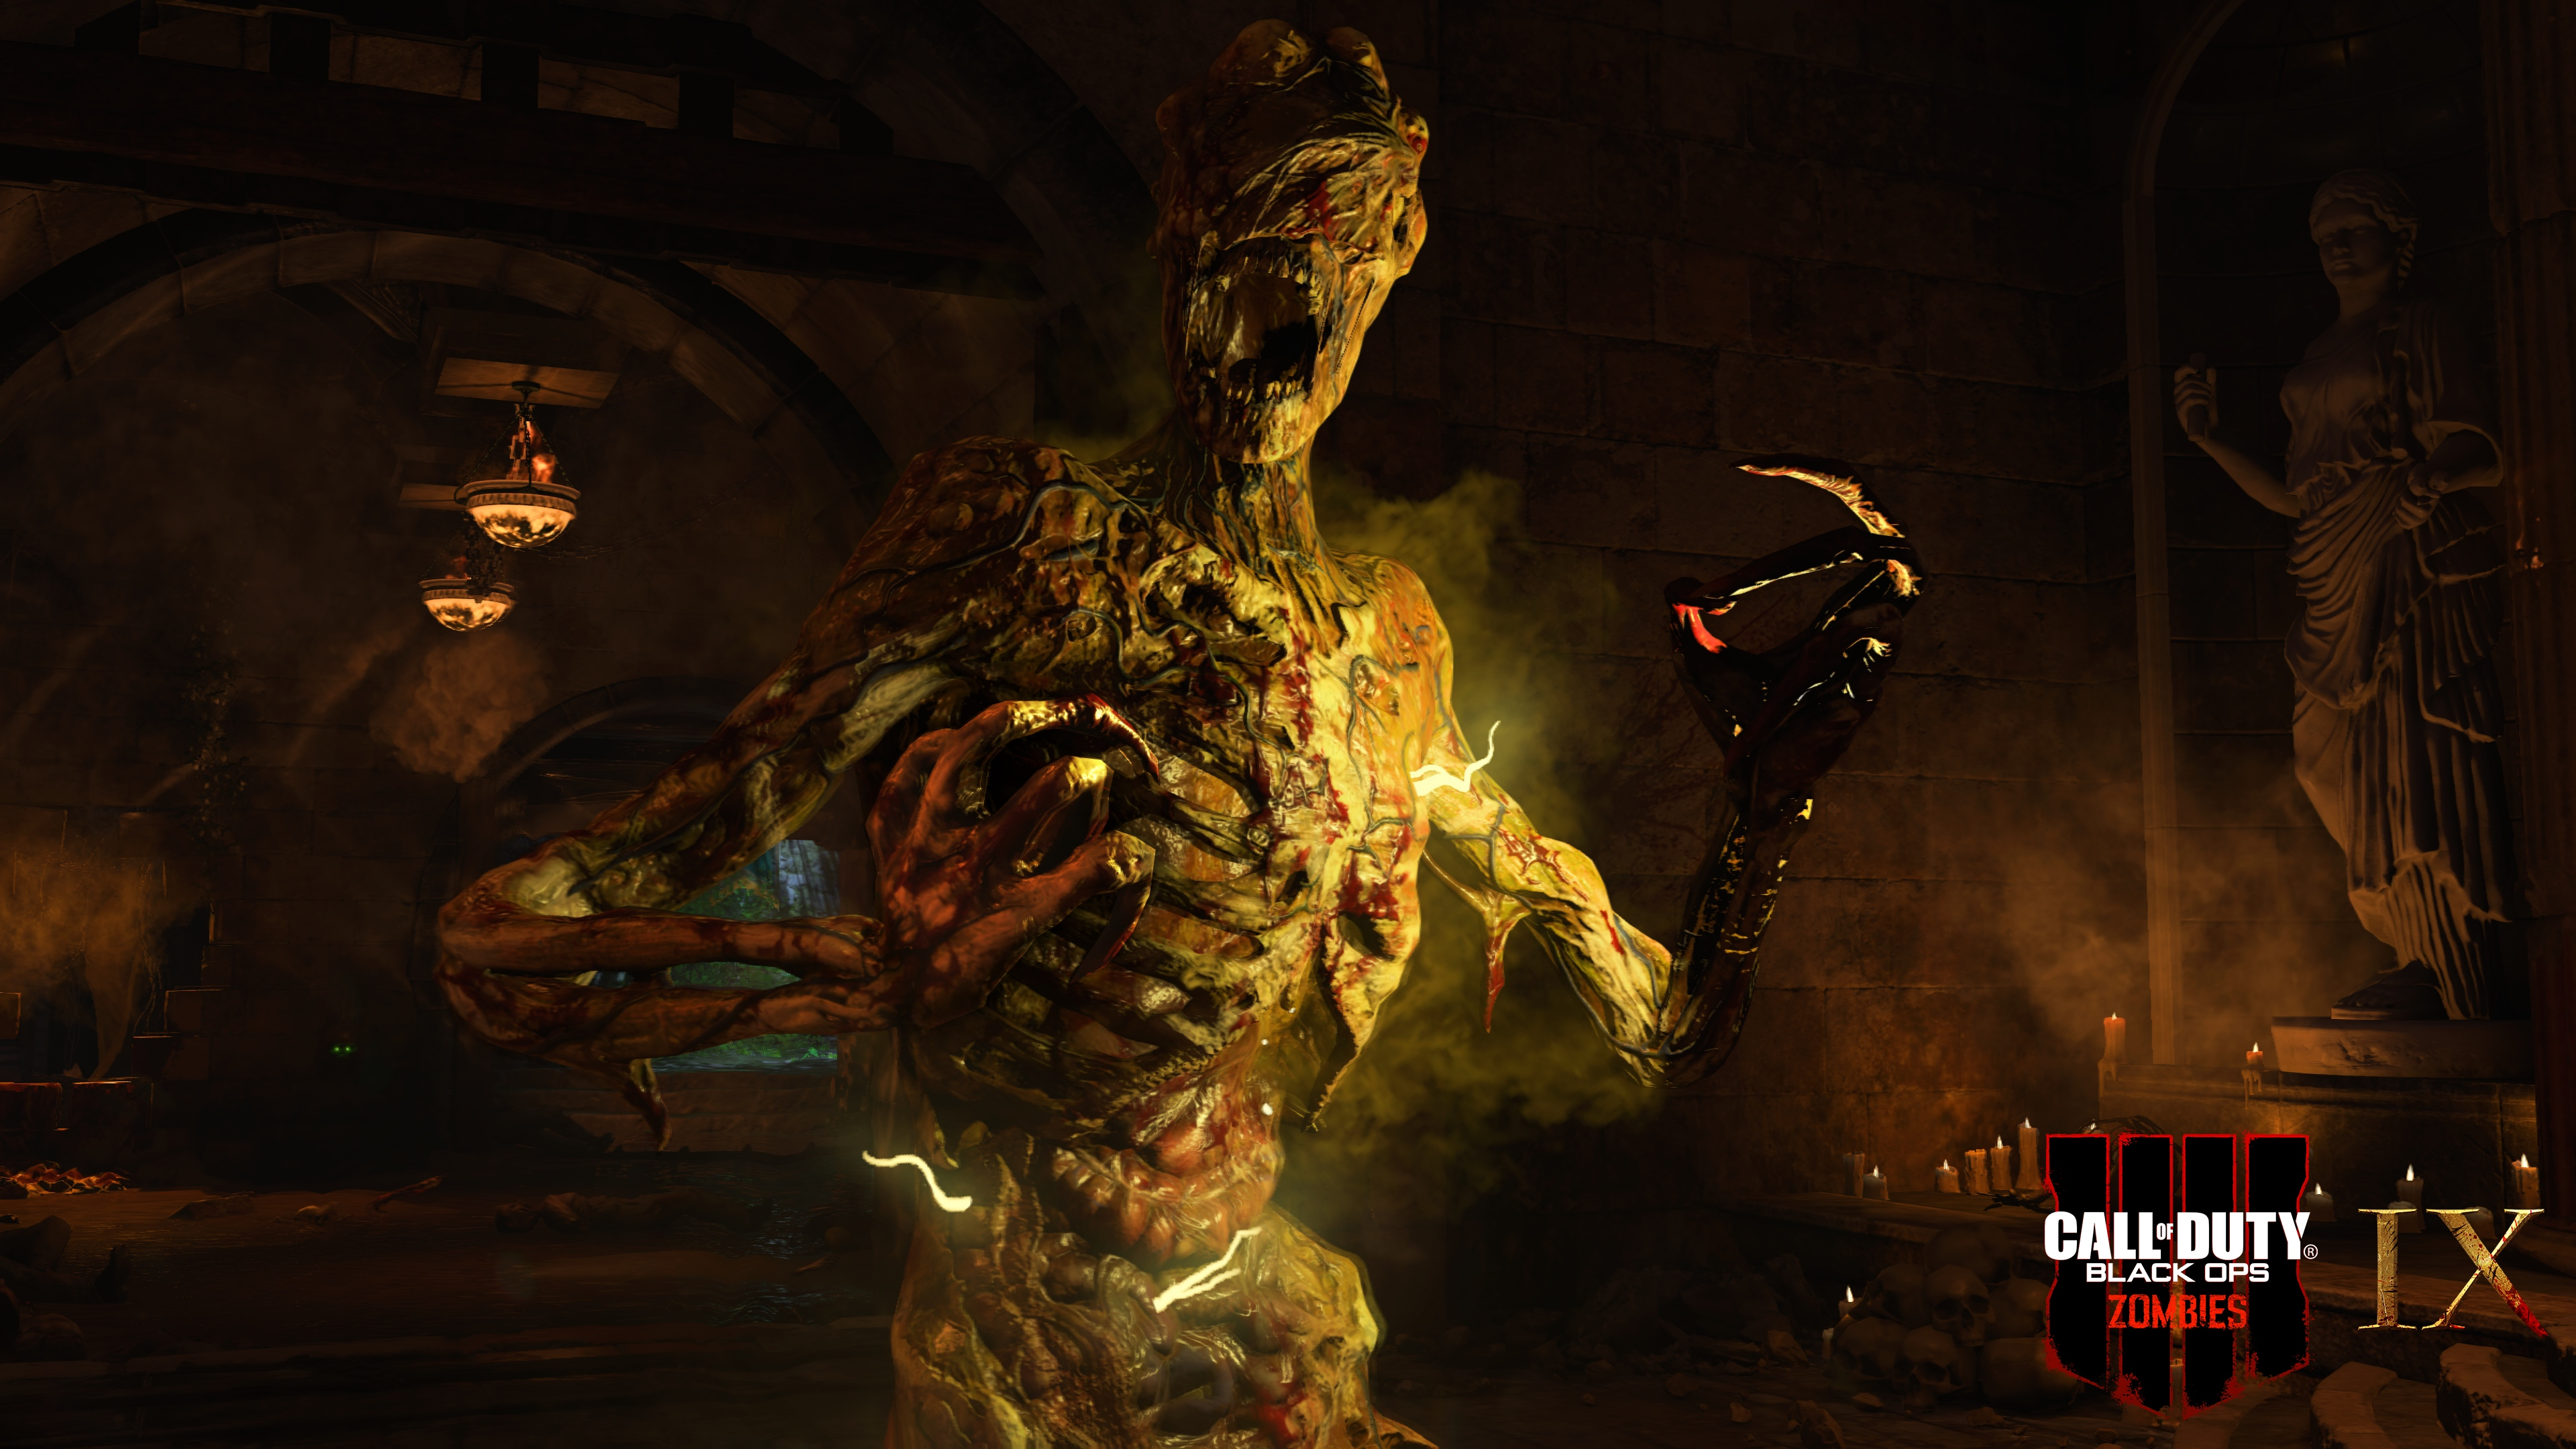 251 2517746 black ops 3 zombies wallpaper